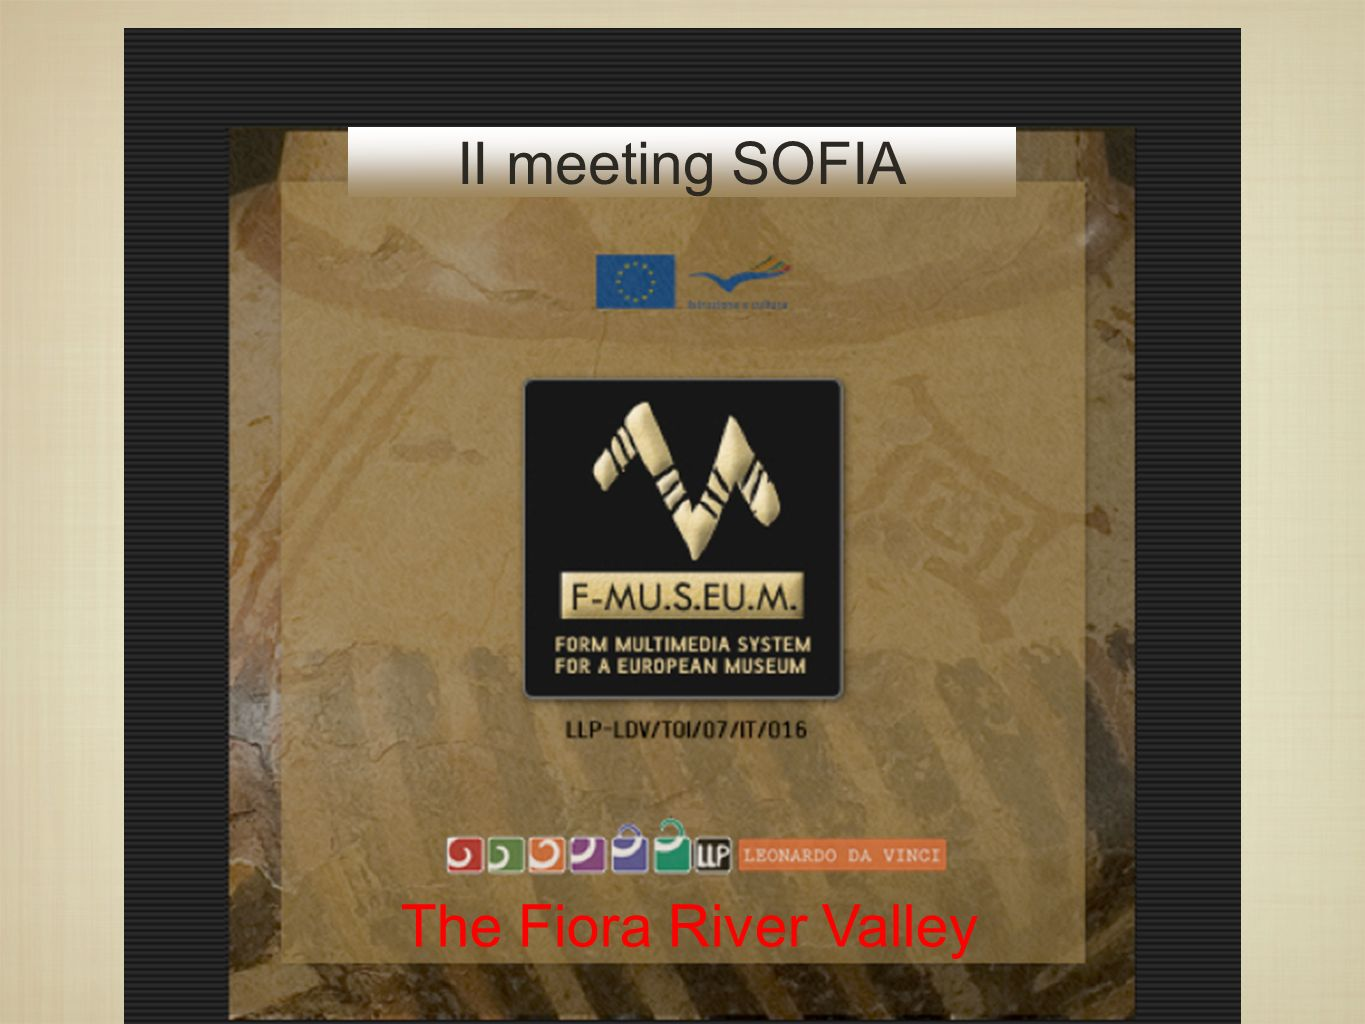 II meeting SOFIA The Fiora River Valley